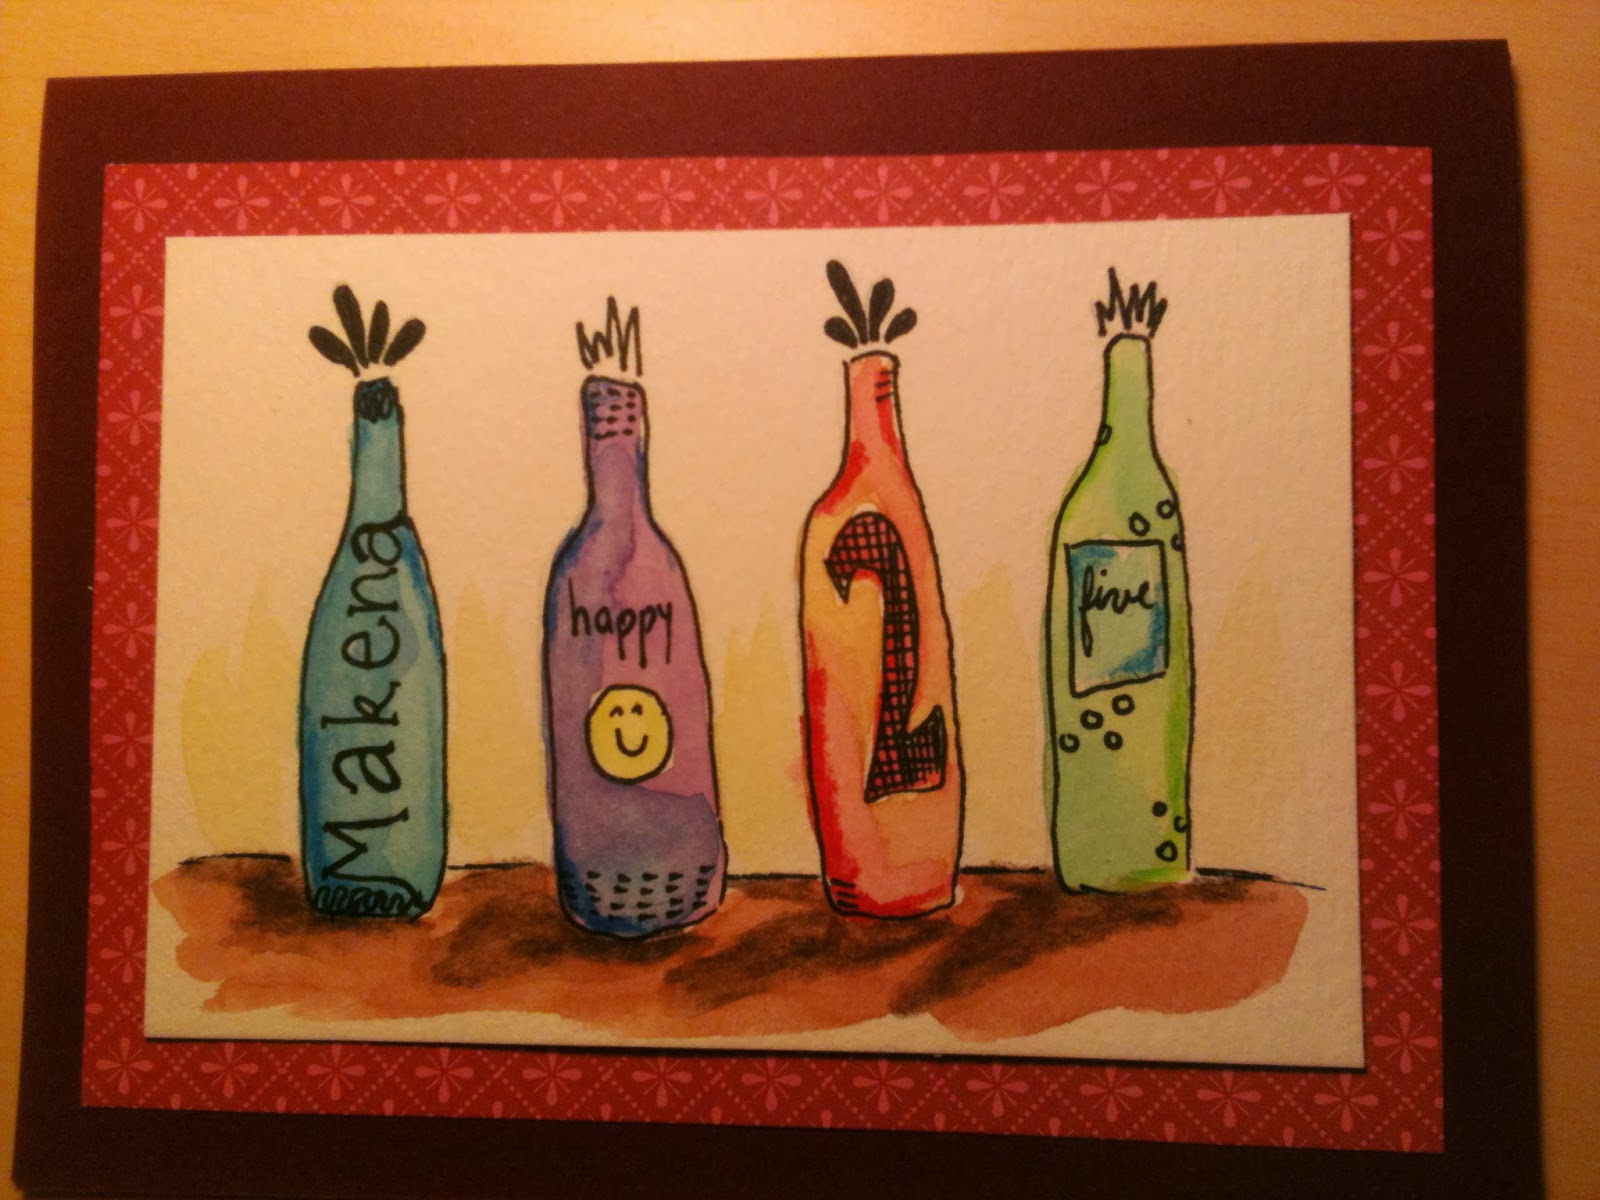 Debbie dots greeting card blog wine bottle birthday makena is a connoisseur of wine so for her birthday card i created a series of decorated wine bottles to carry my birthday message m4hsunfo